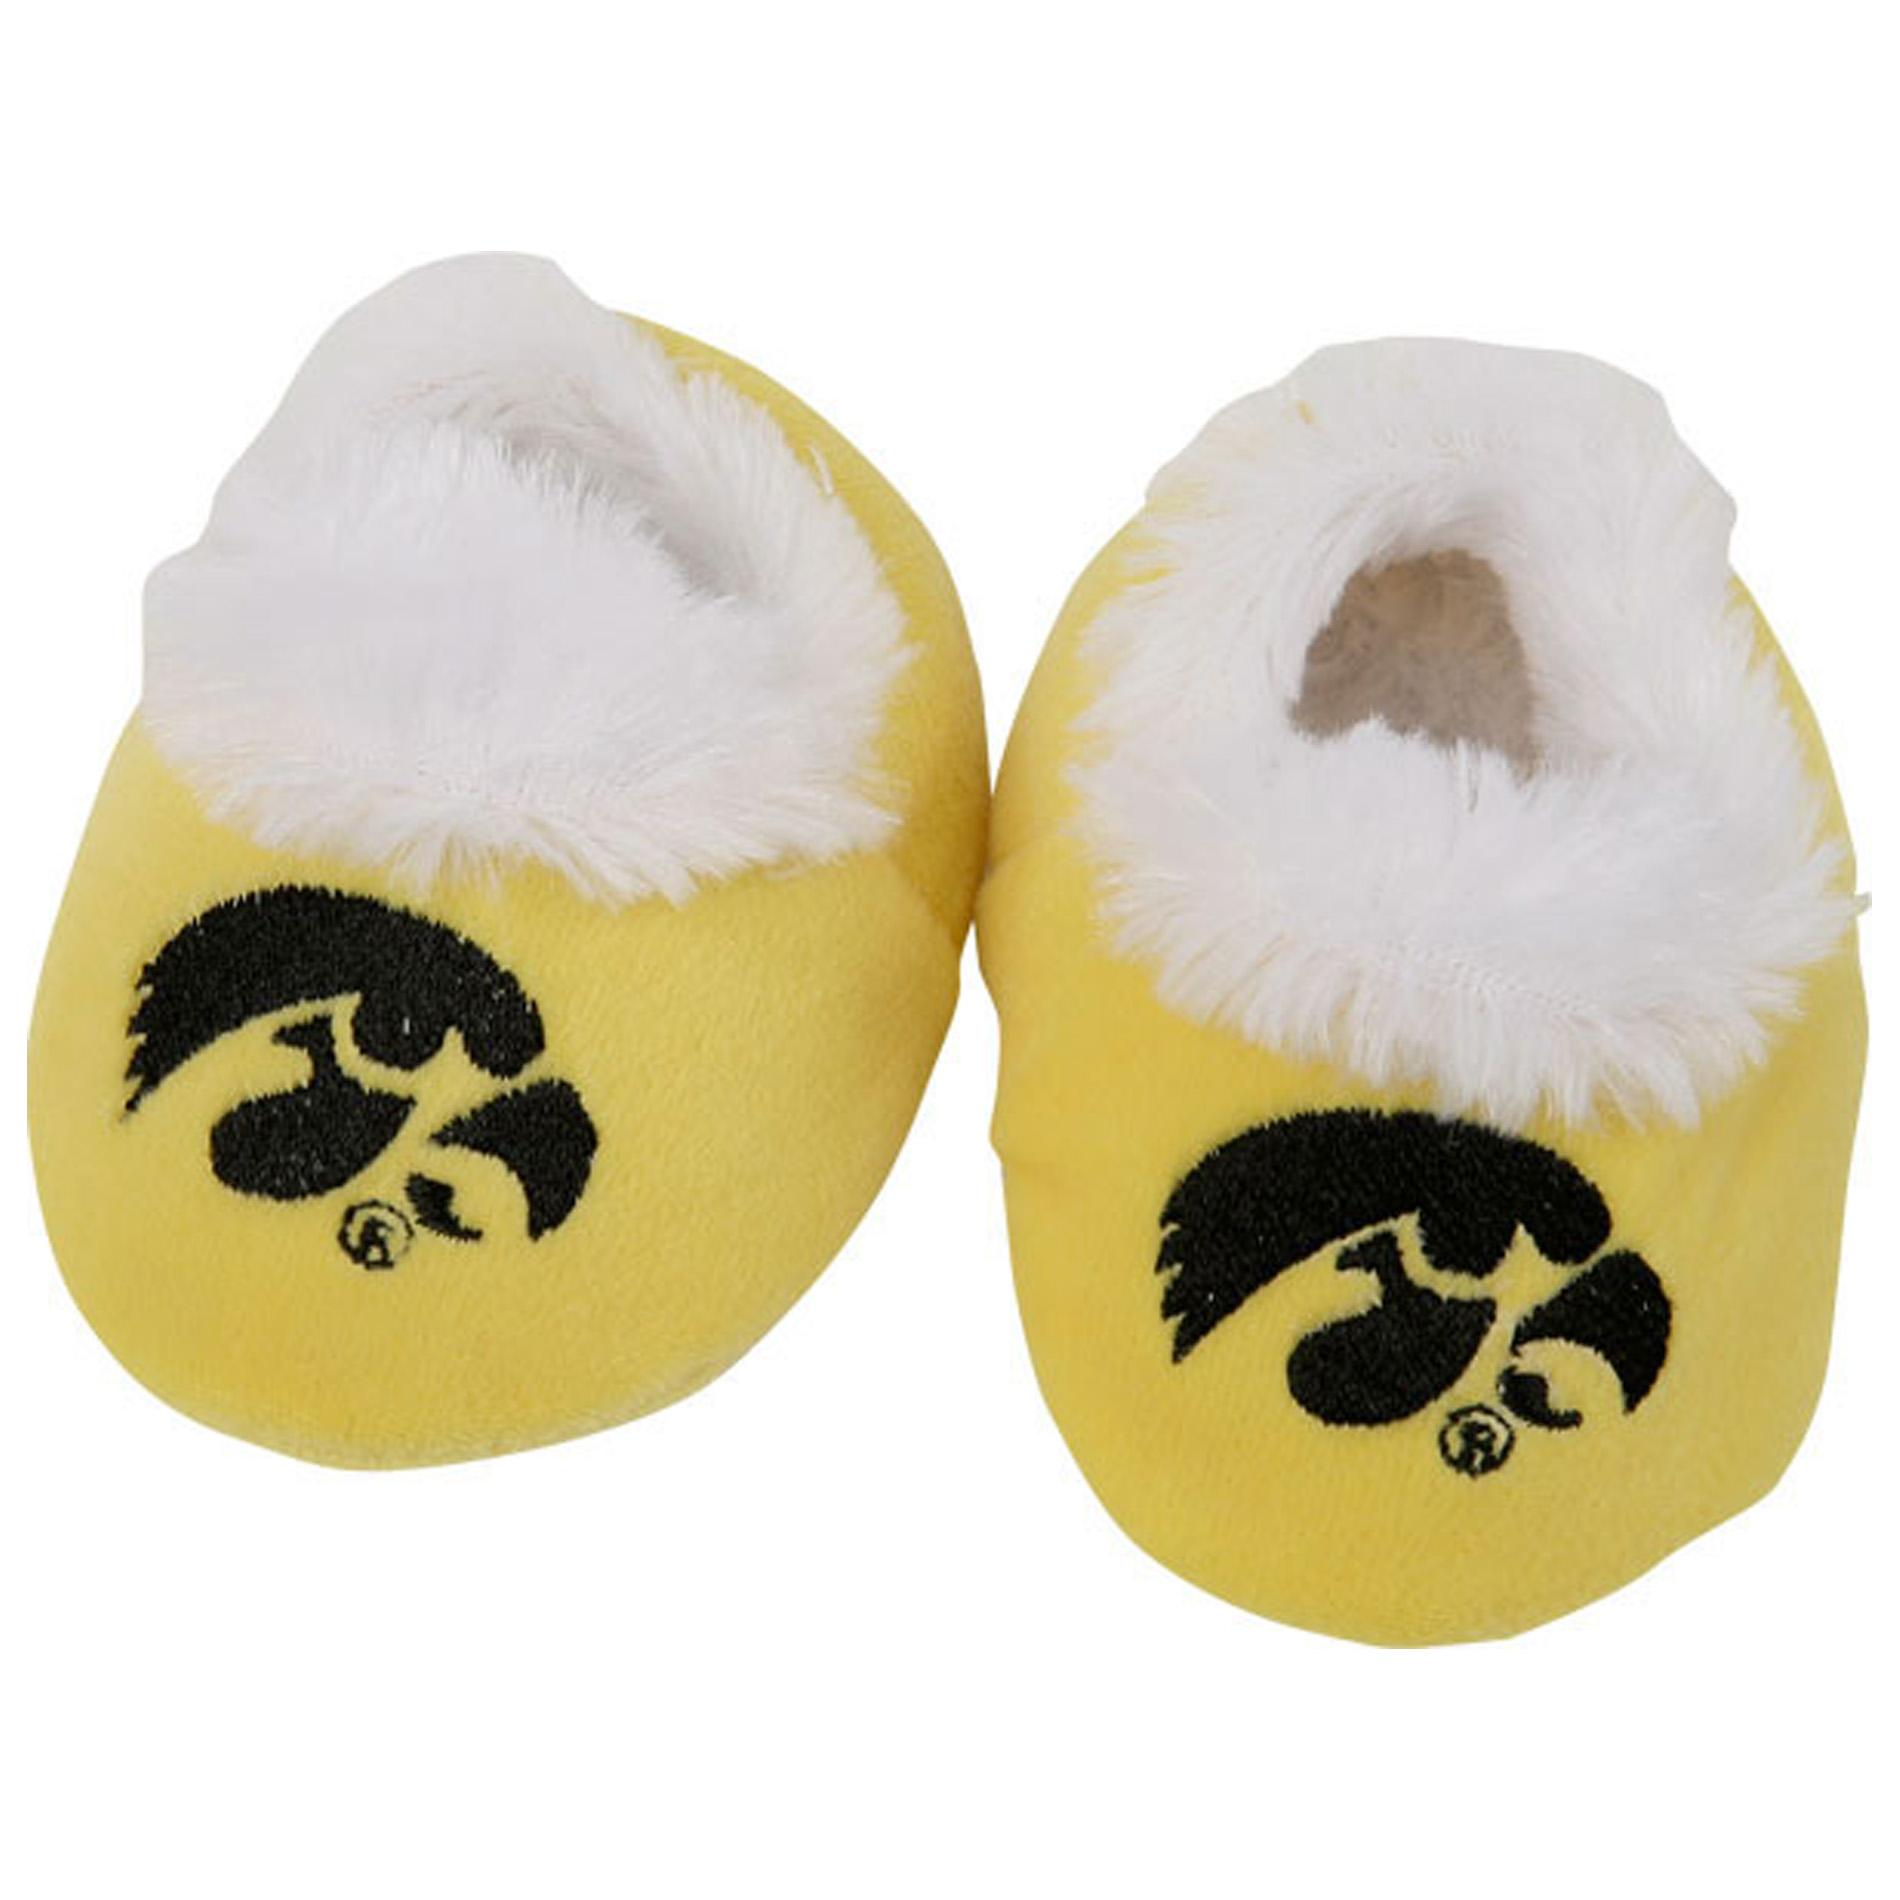 Iowa Hawkeyes Baby Bootie Slippers - Thumbnail 0